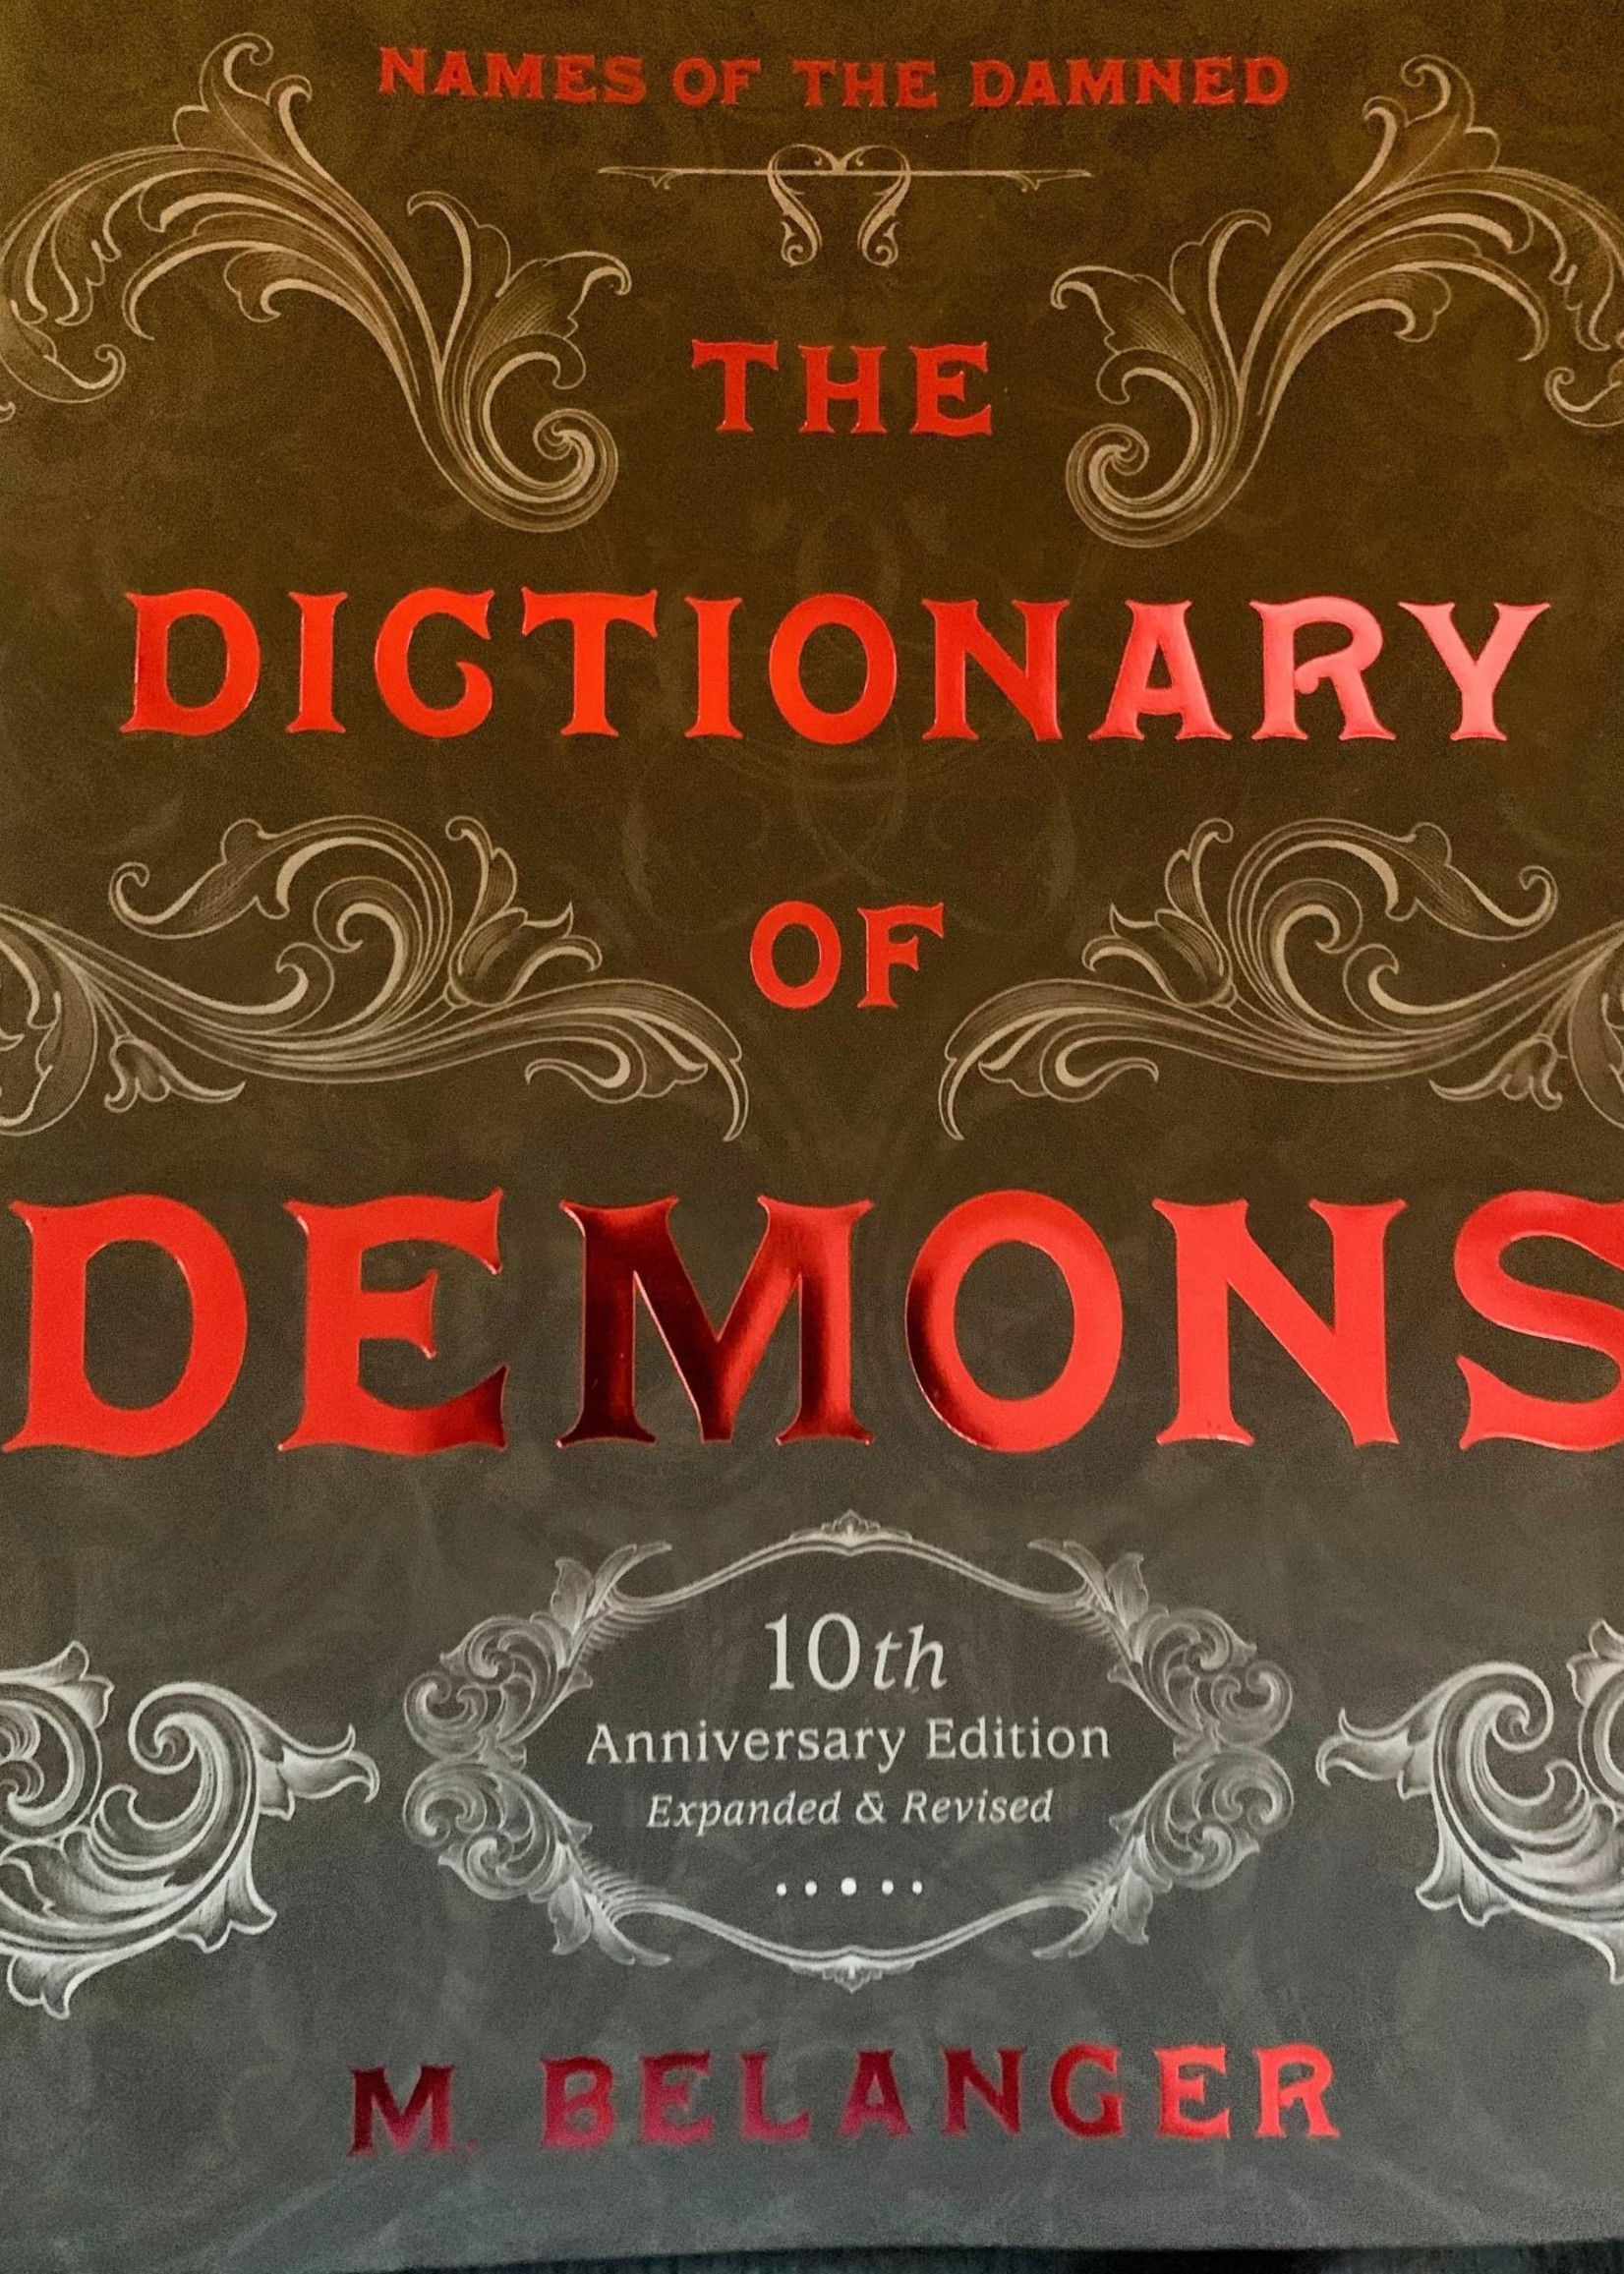 The Dictionary of Demons  10th Anniversary Edition -  M.Belanger